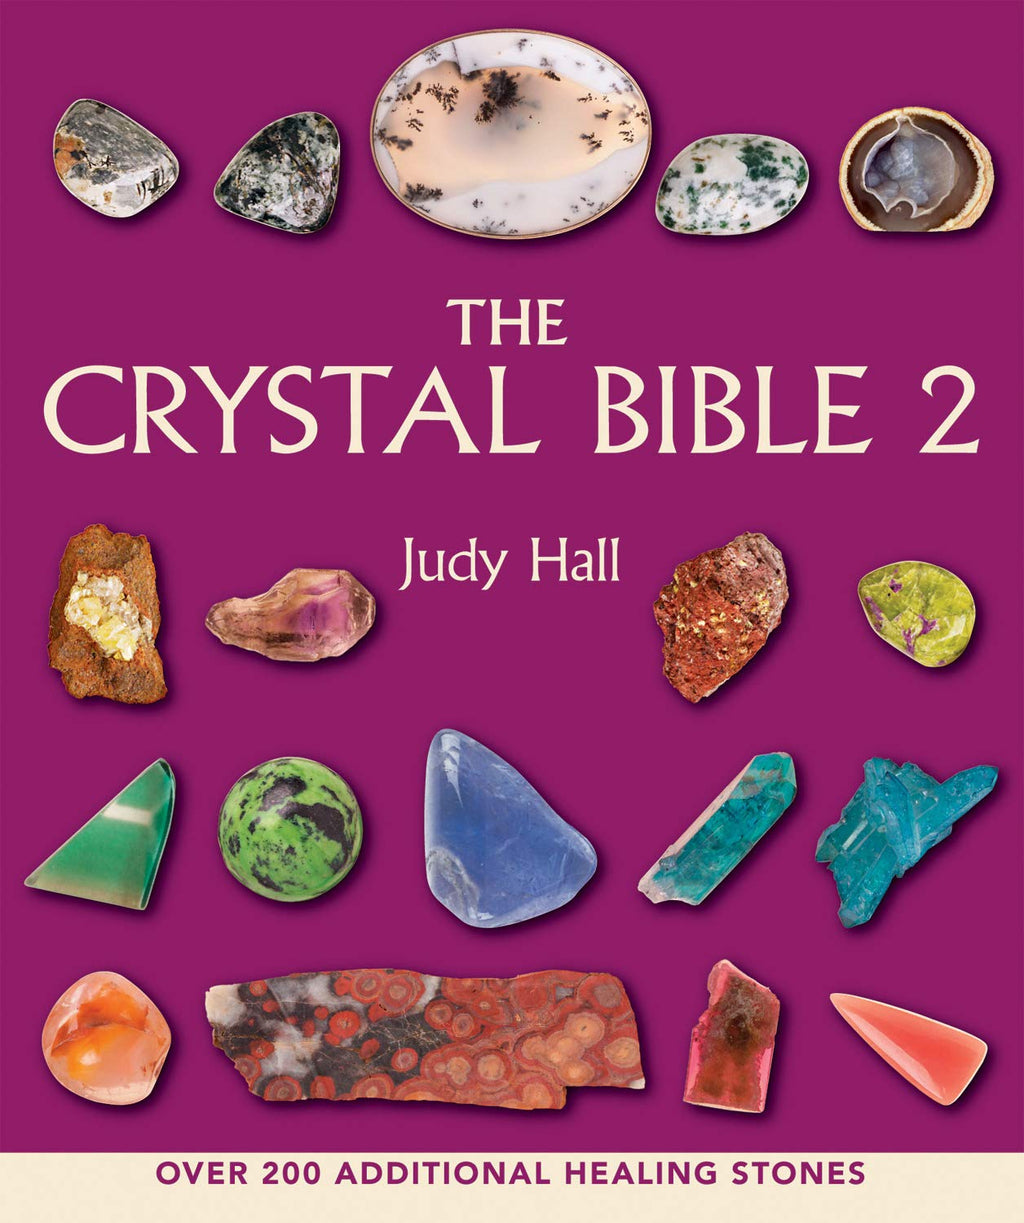 Crystal Bible 2 by Judy Hall